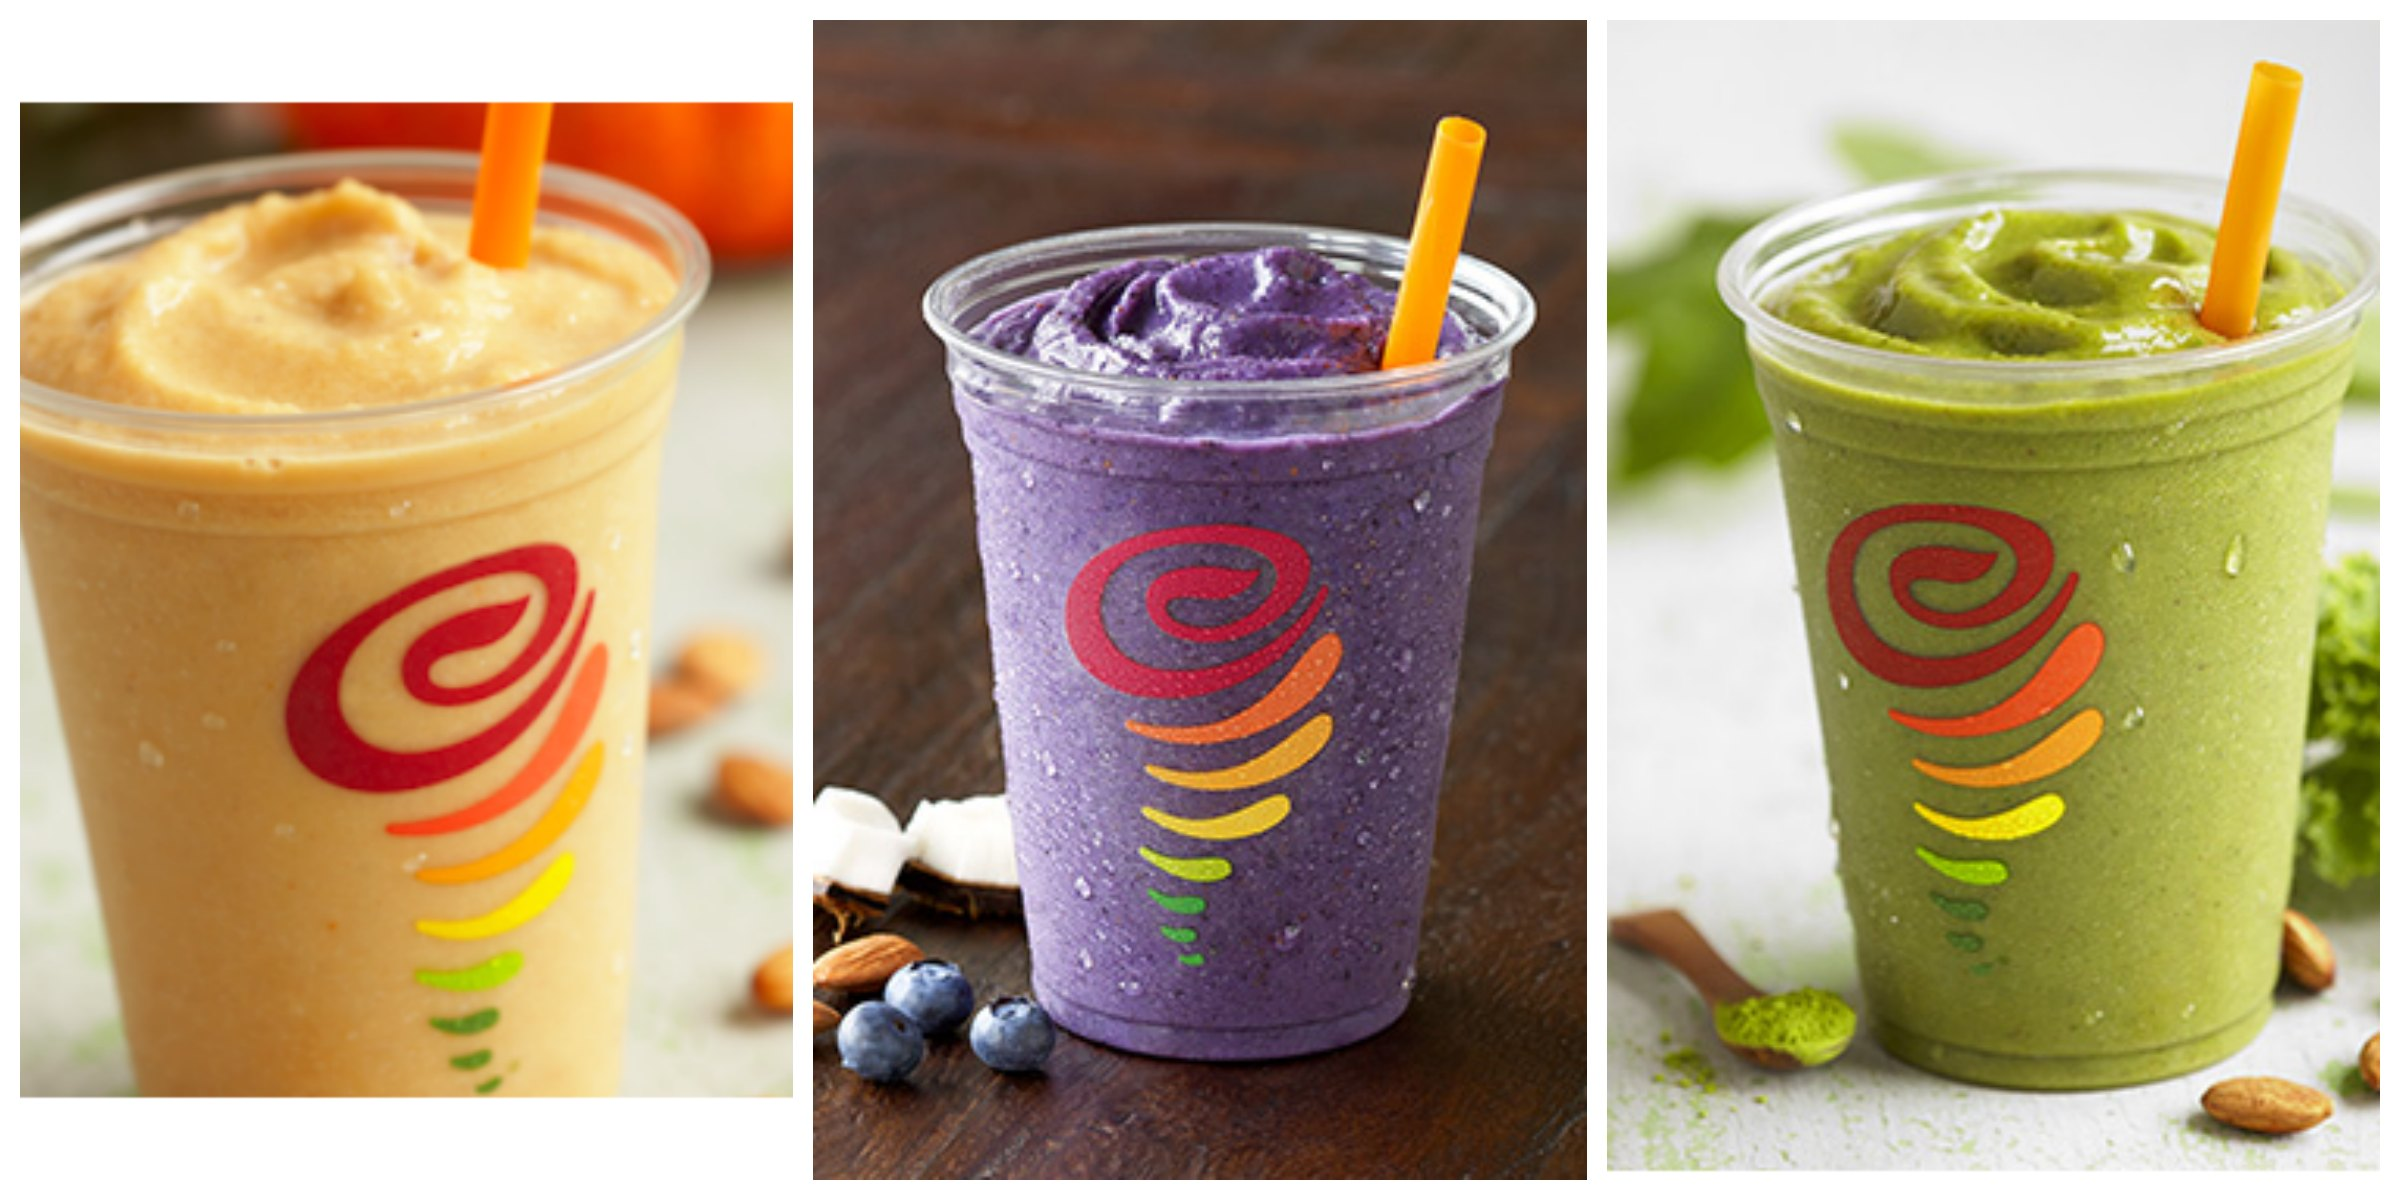 Make your favorite Jamba Juice smoothie at home! Not only is it super delicious, but it's healthy too!